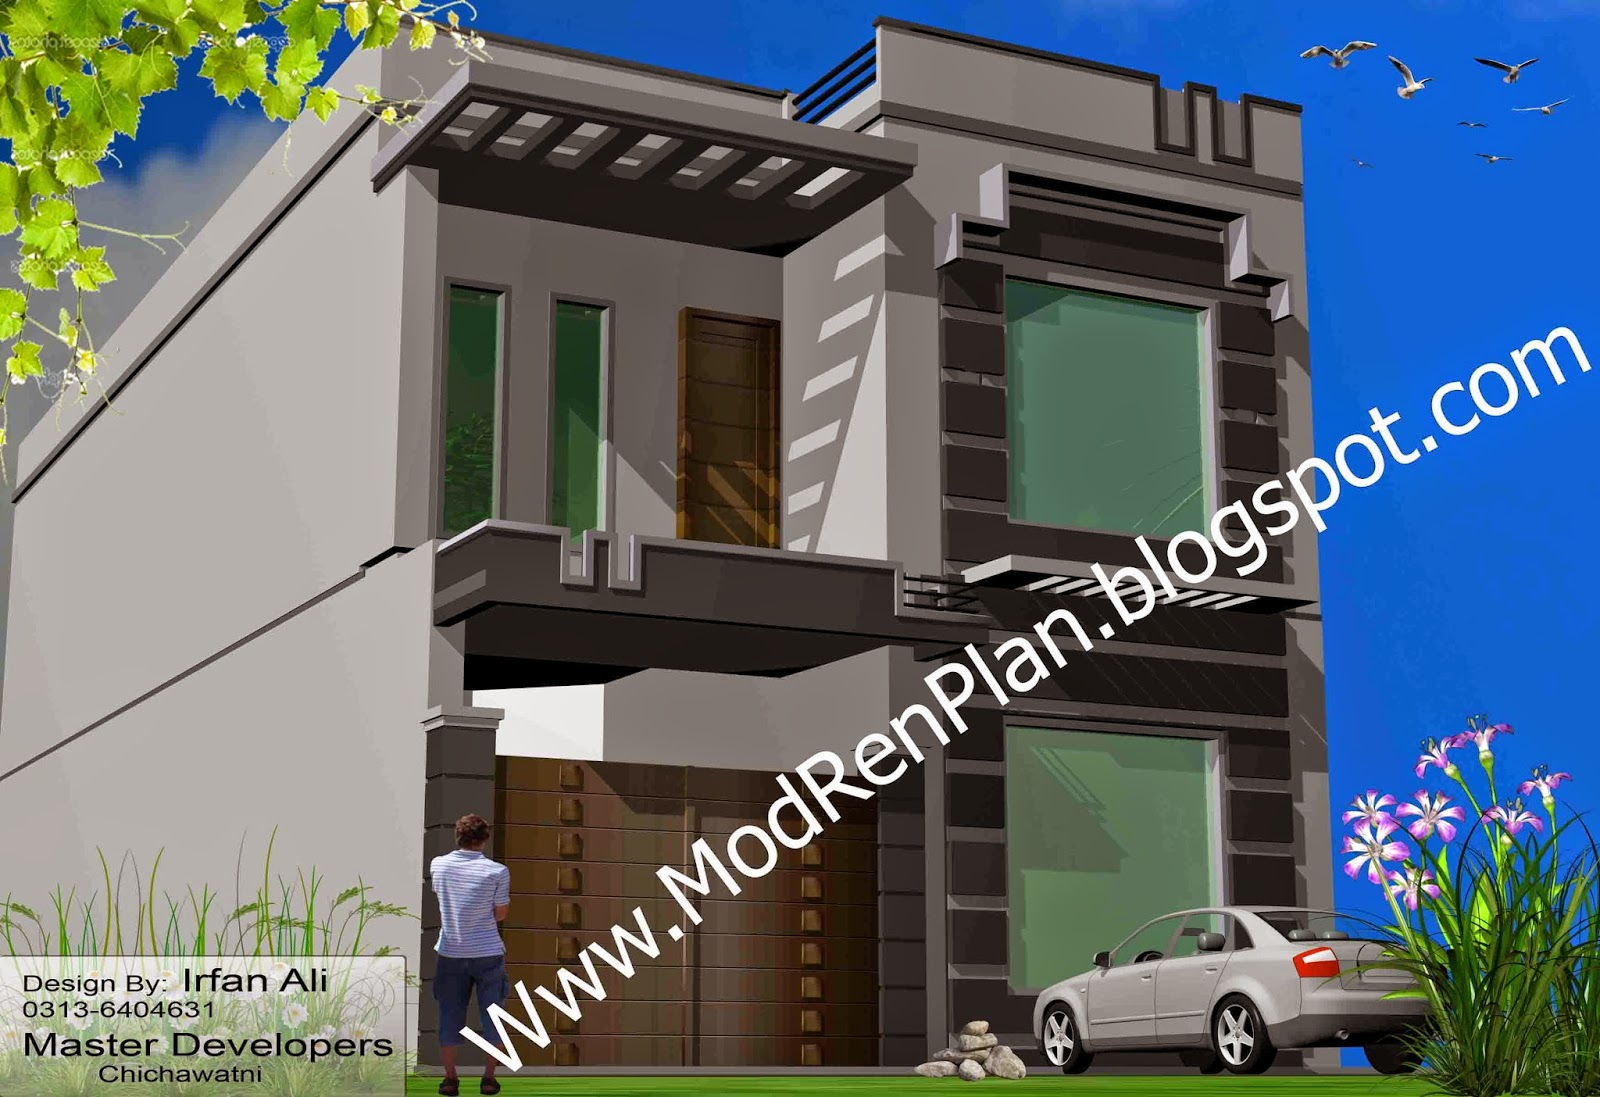 Home Front Elevation Design Pakistan 5 Marla | bookfanatic89